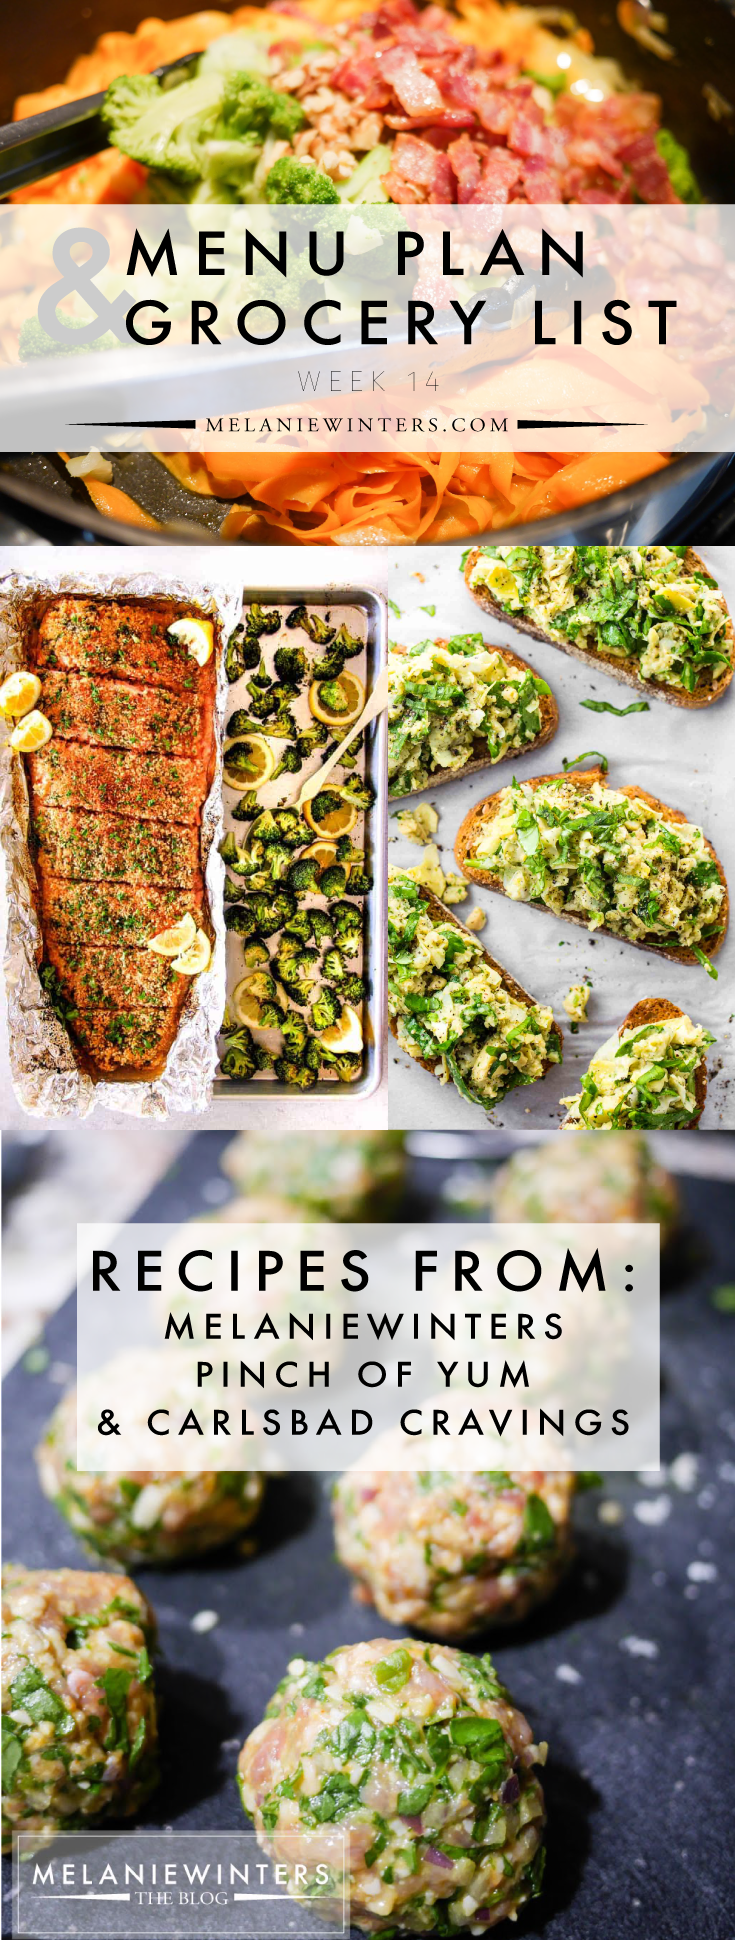 This week's meal plan is all about repurposing leftovers to make easy, healthy and delicious weeknight meals.